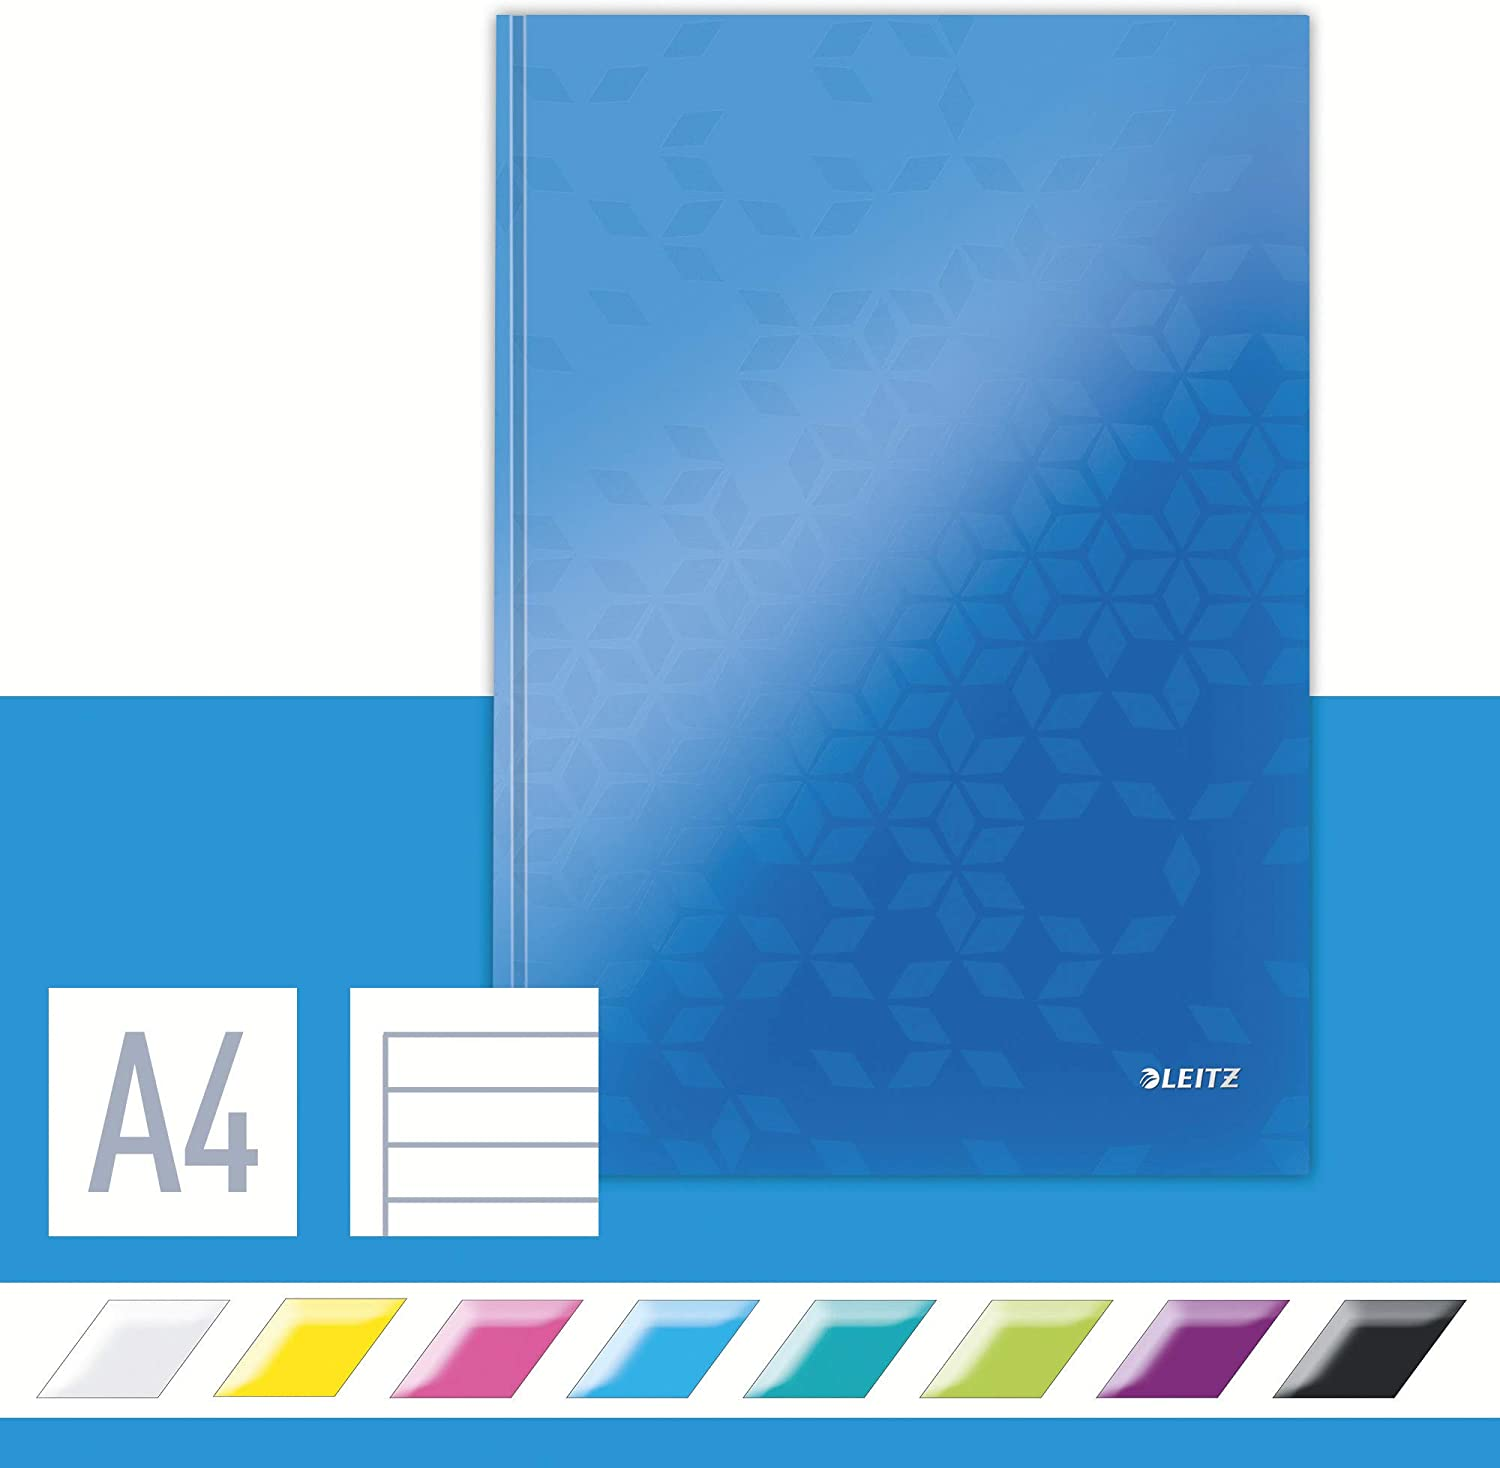 Leitz A4 Hard Super sale Cover Notebook Blue Sheets GSM Detroit Mall 80 Ivo 90 Ruled